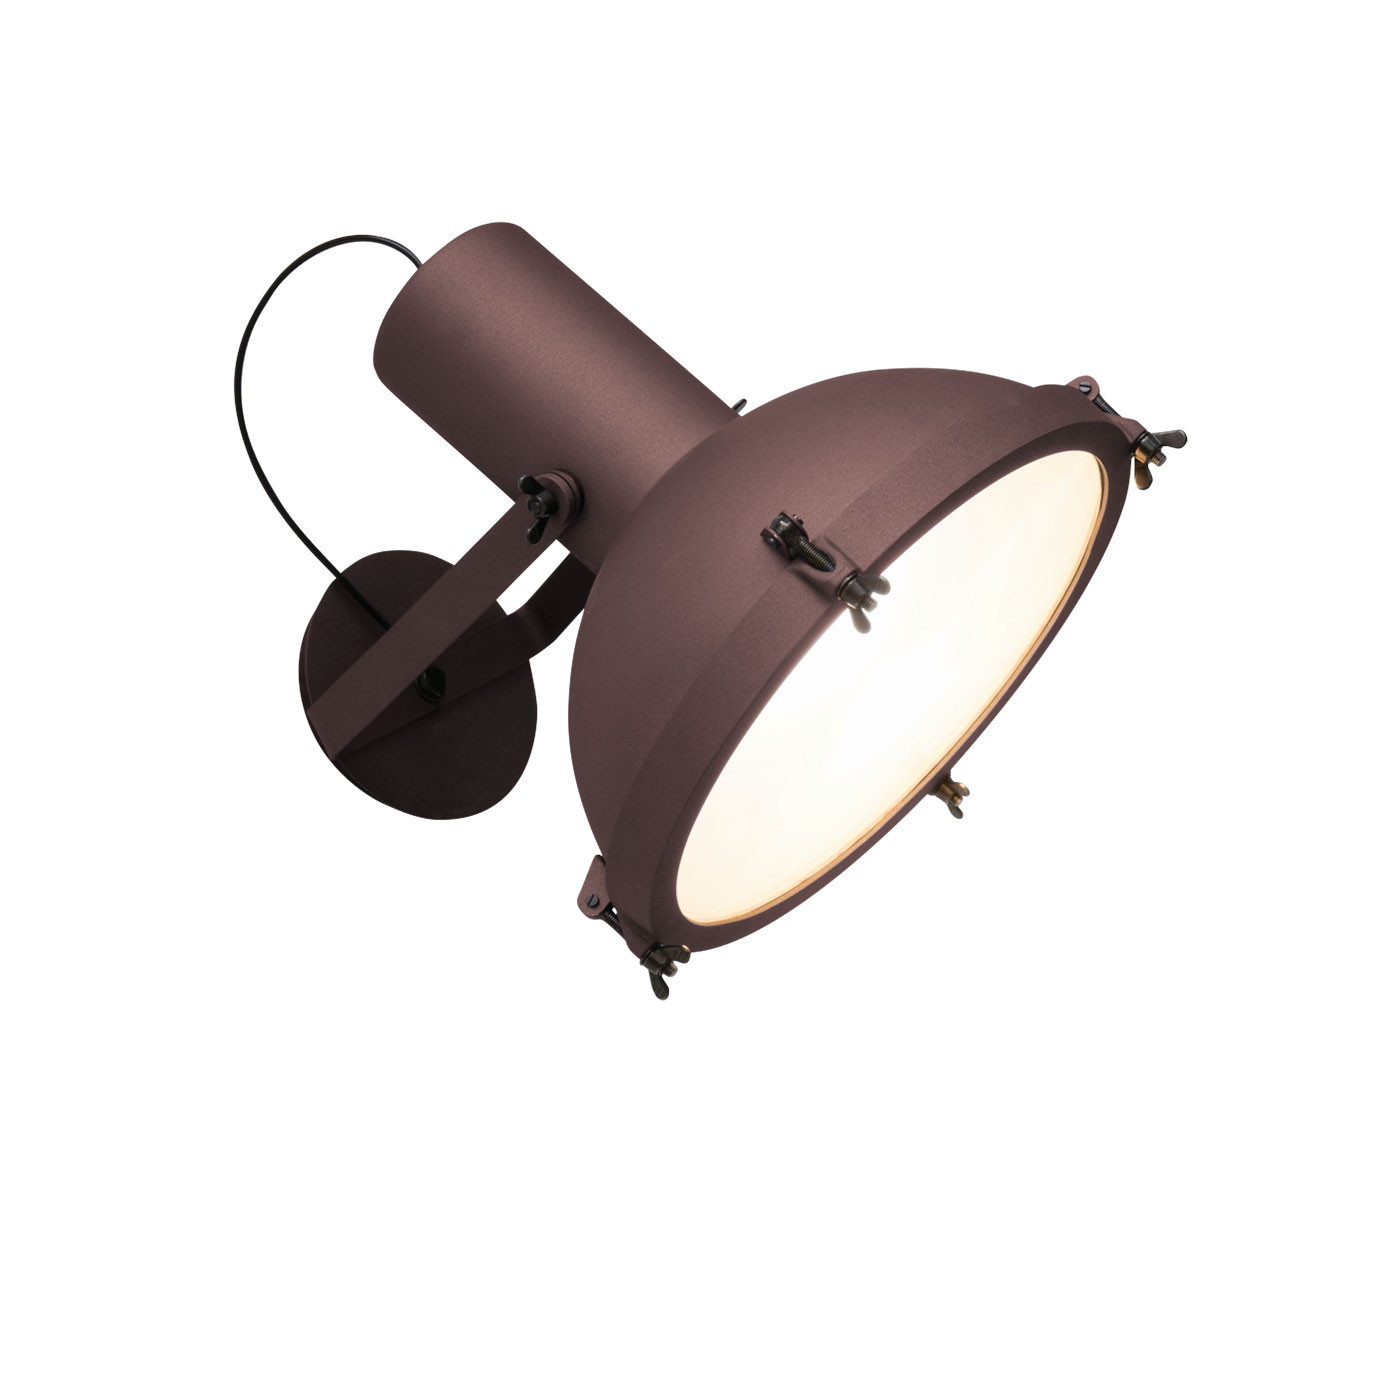 Nemo Projecteur 365 Outdoor Wall and Ceiling Light